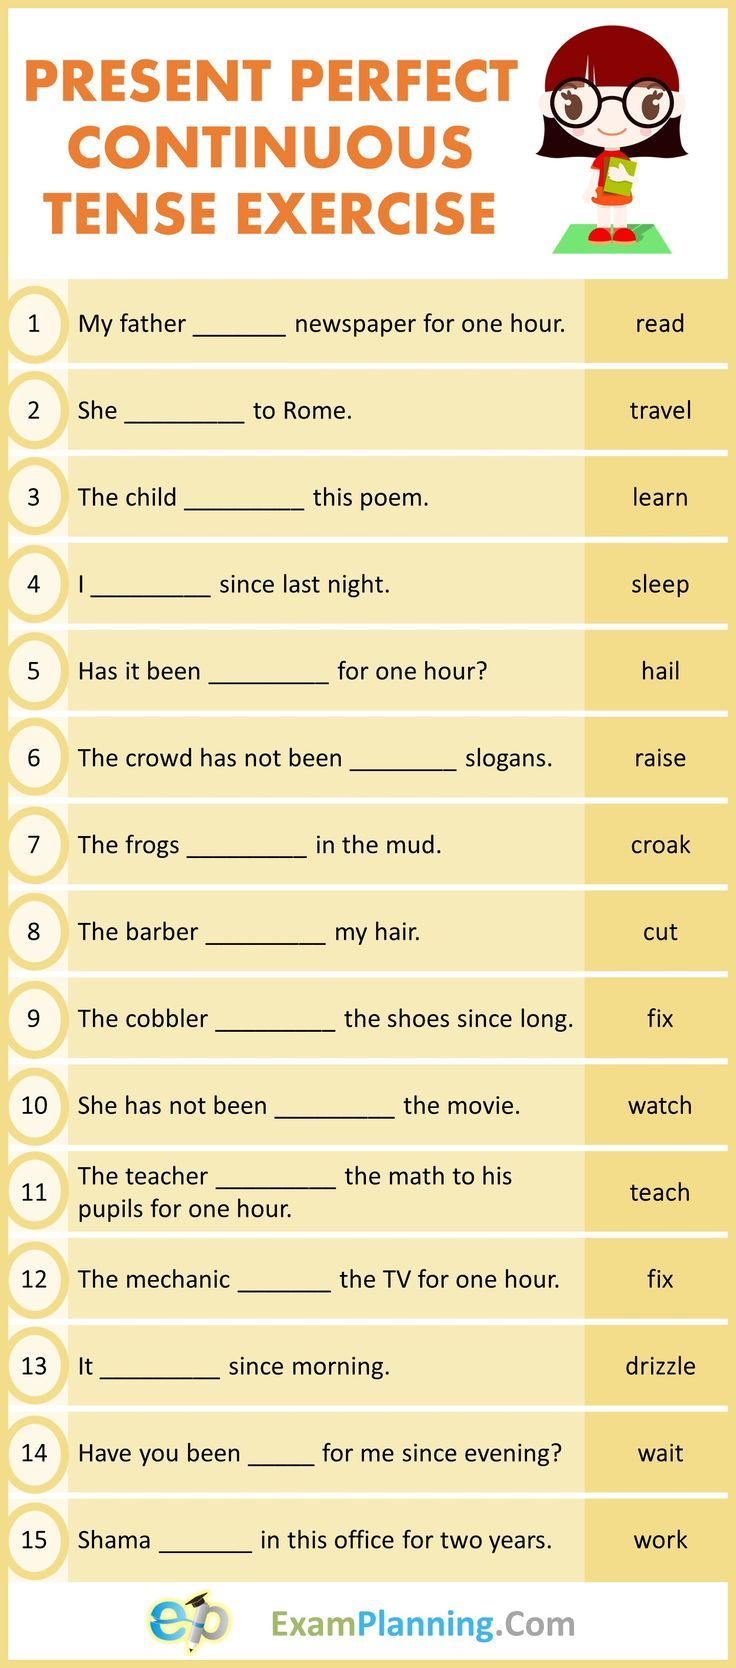 hight resolution of Present Perfect Continuous Tense Exercises   Tenses exercises